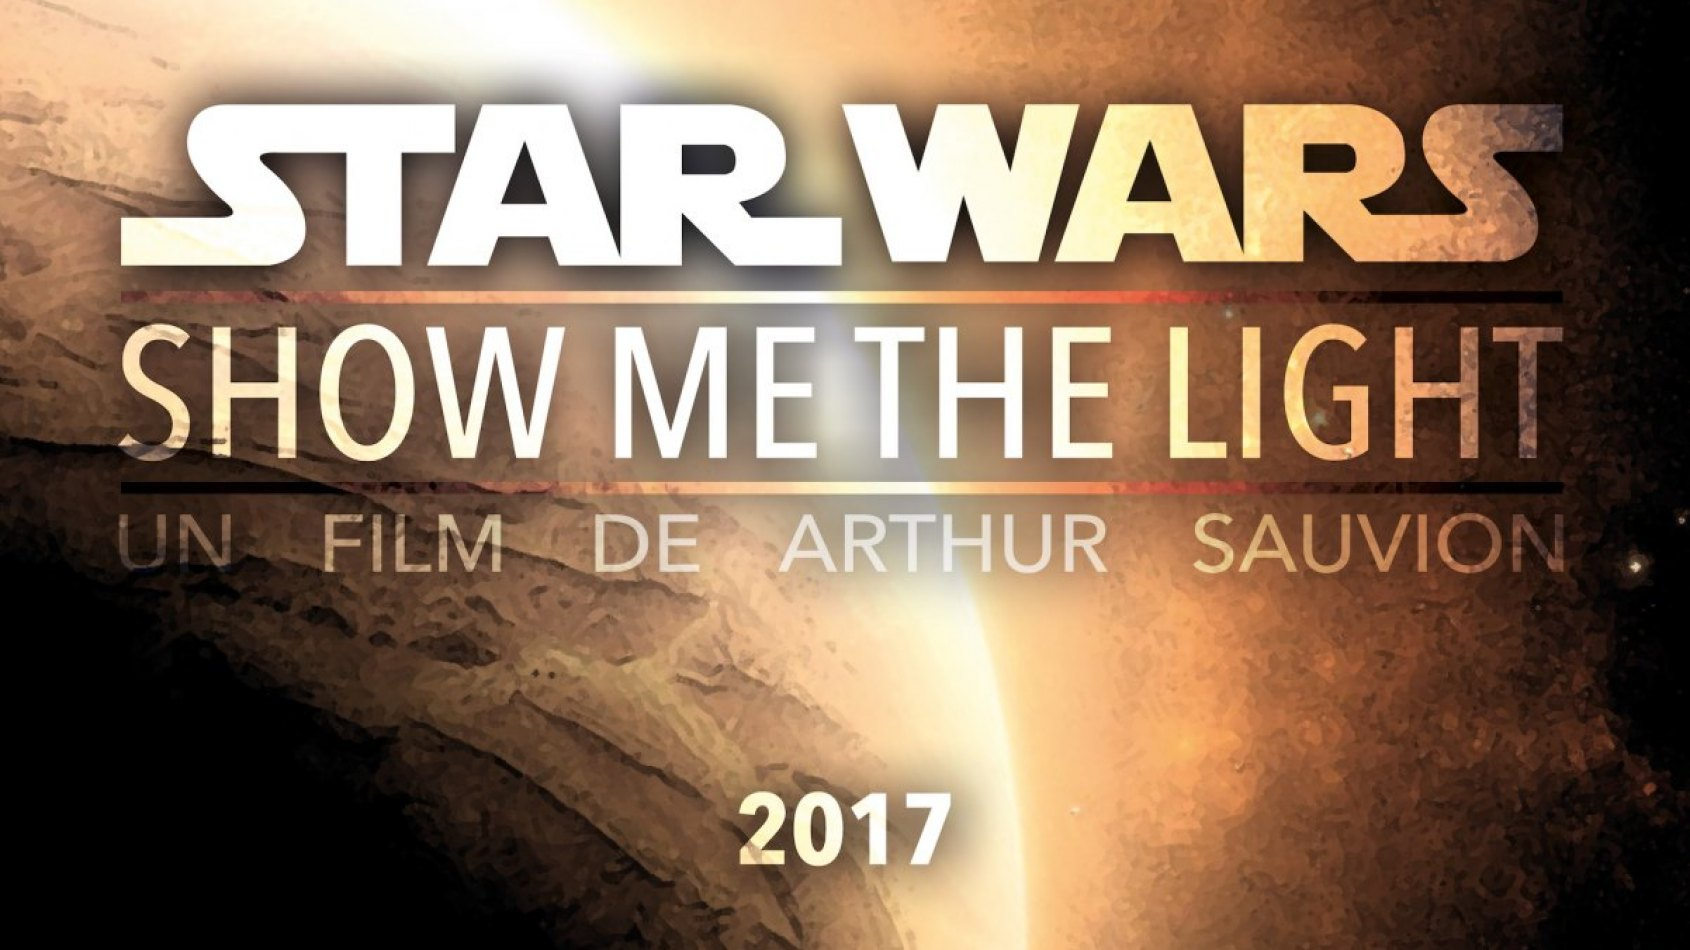 Star Wars - Show Me The Light, un court m�trage avec Plan�te Star Wars